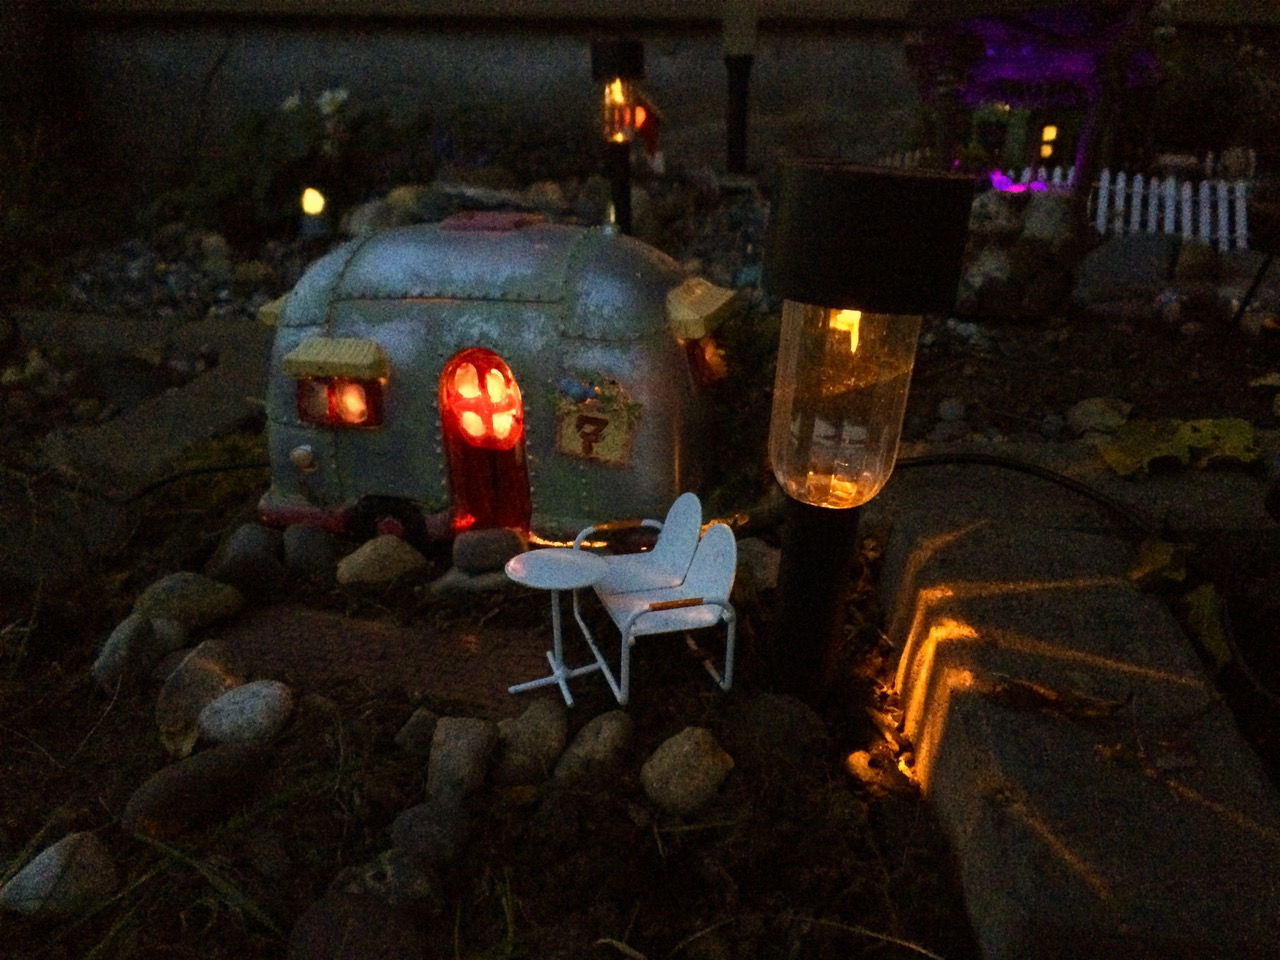 There is an Airstream trailer in the village. Like the other homes, it lights up at night when someone is home.